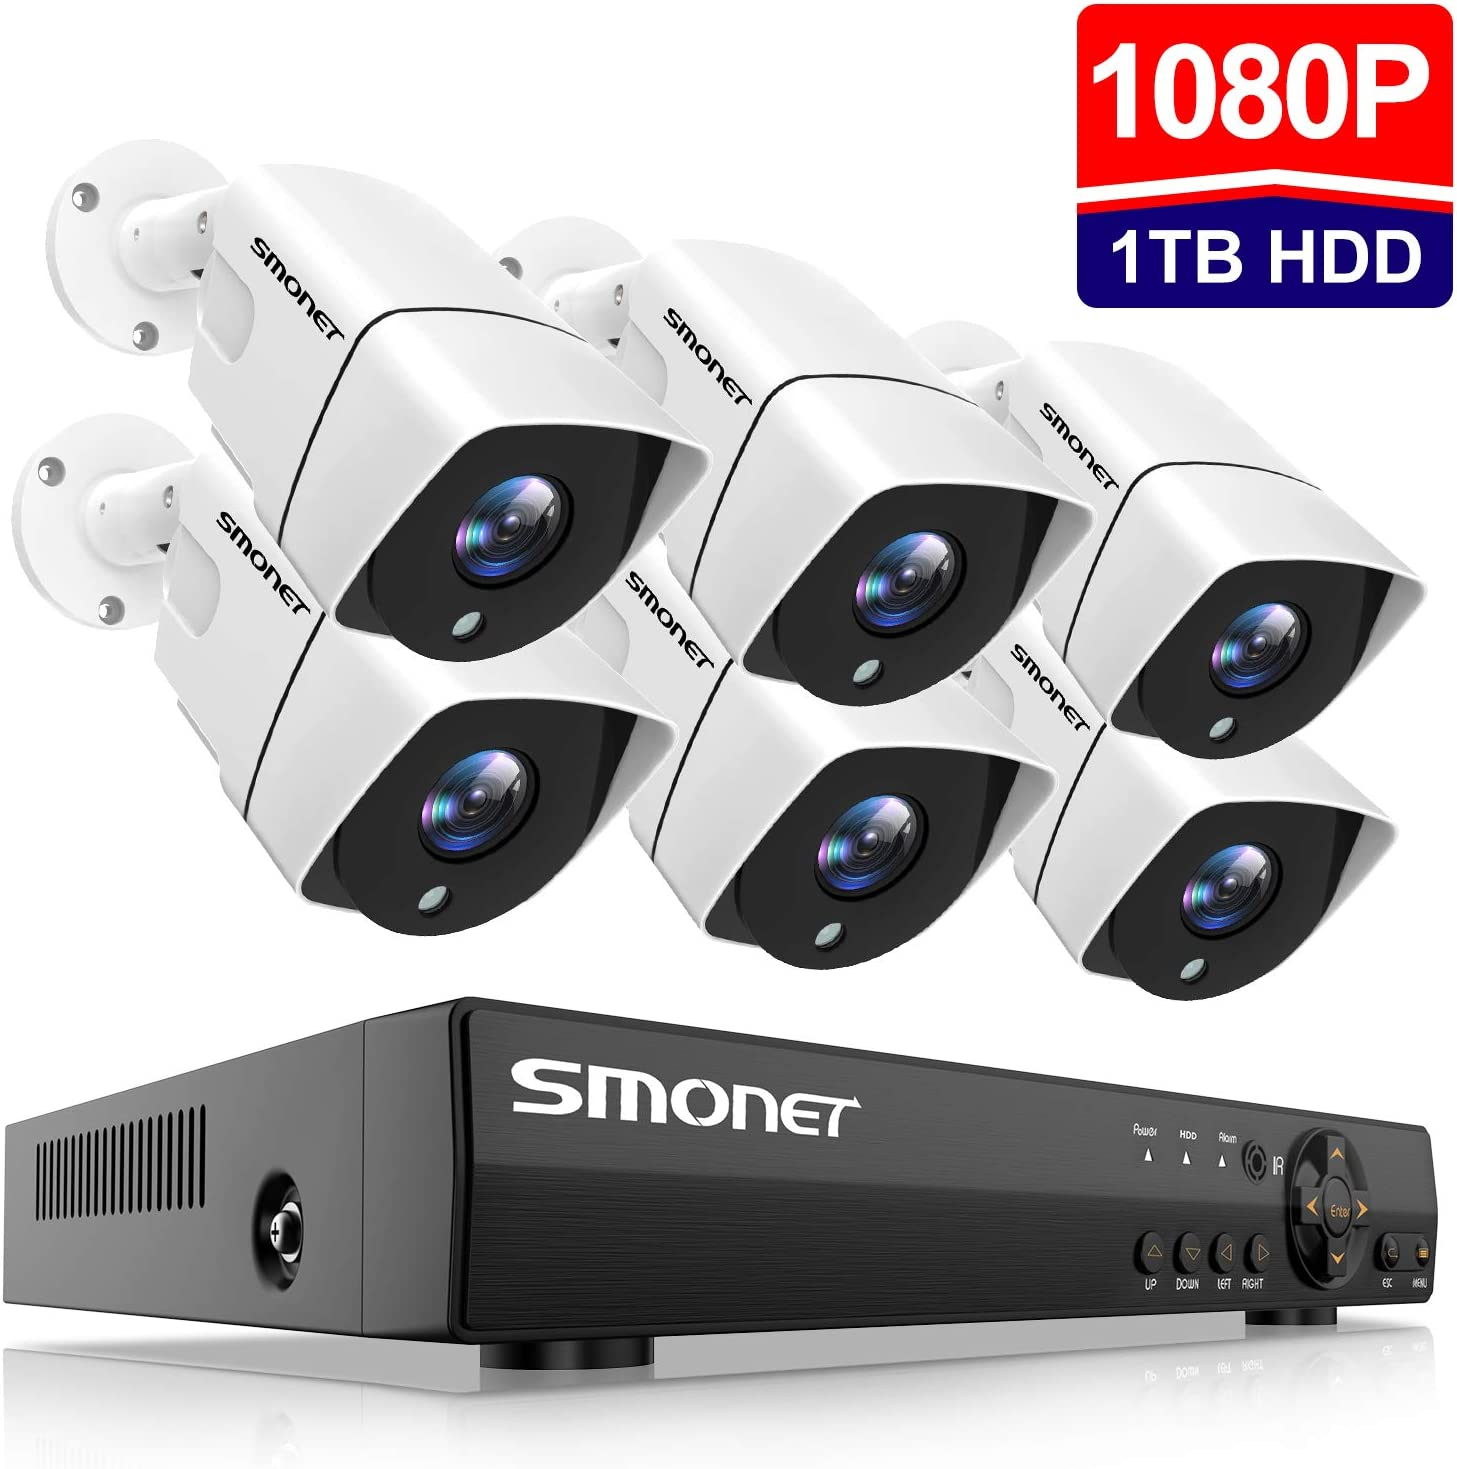 2019 New 1080P Security Camera System,SMONET 8-Channel Outdoor Indoor Surveillance System 1TB Hard Drive ,6pcs 1080P 2.0MP Security Cameras,65ft Night Vision,P2P, Free APP,Easy Remote View